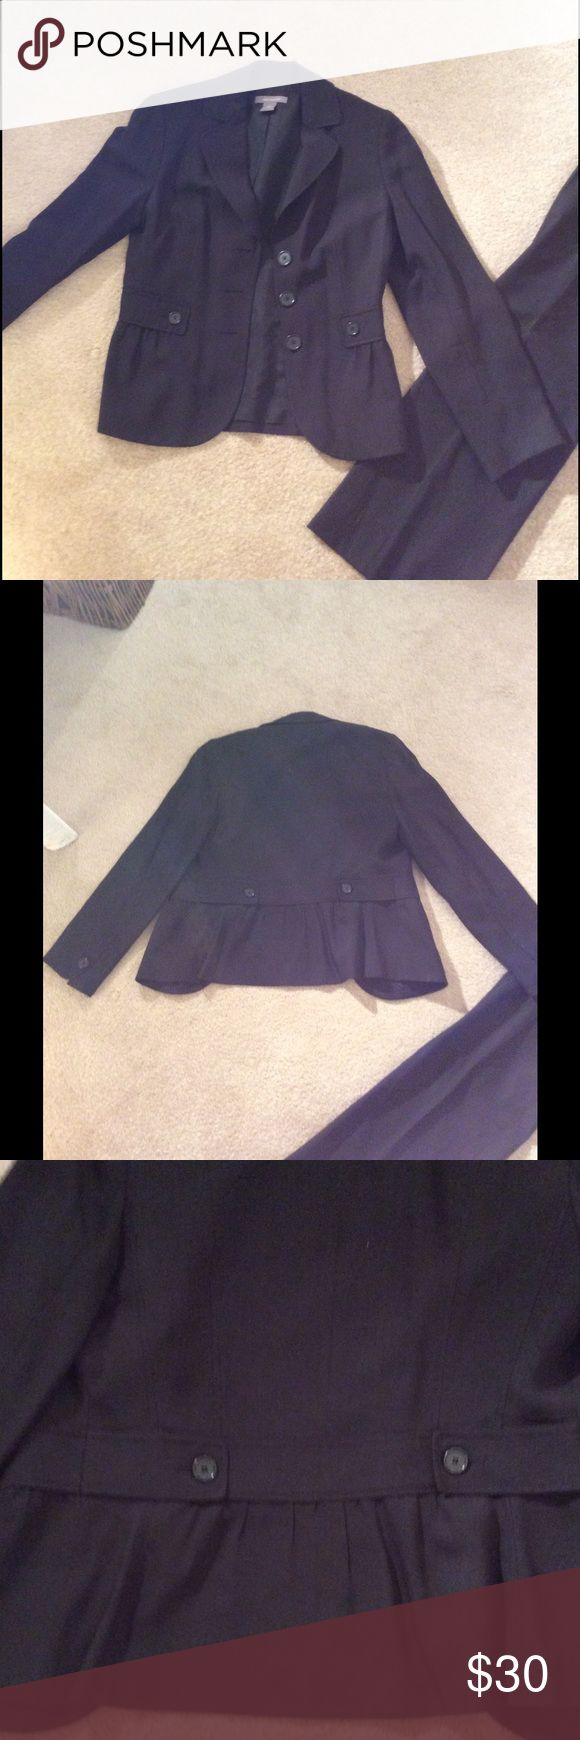 Black Blazer Black Ann Taylor blazer, great condition. This works perfectly with the black banana Republic Dress Pants and the black Loft Dress skirt I am selling if you are looking for an affordable suit. Ann Taylor Jackets & Coats Blazers